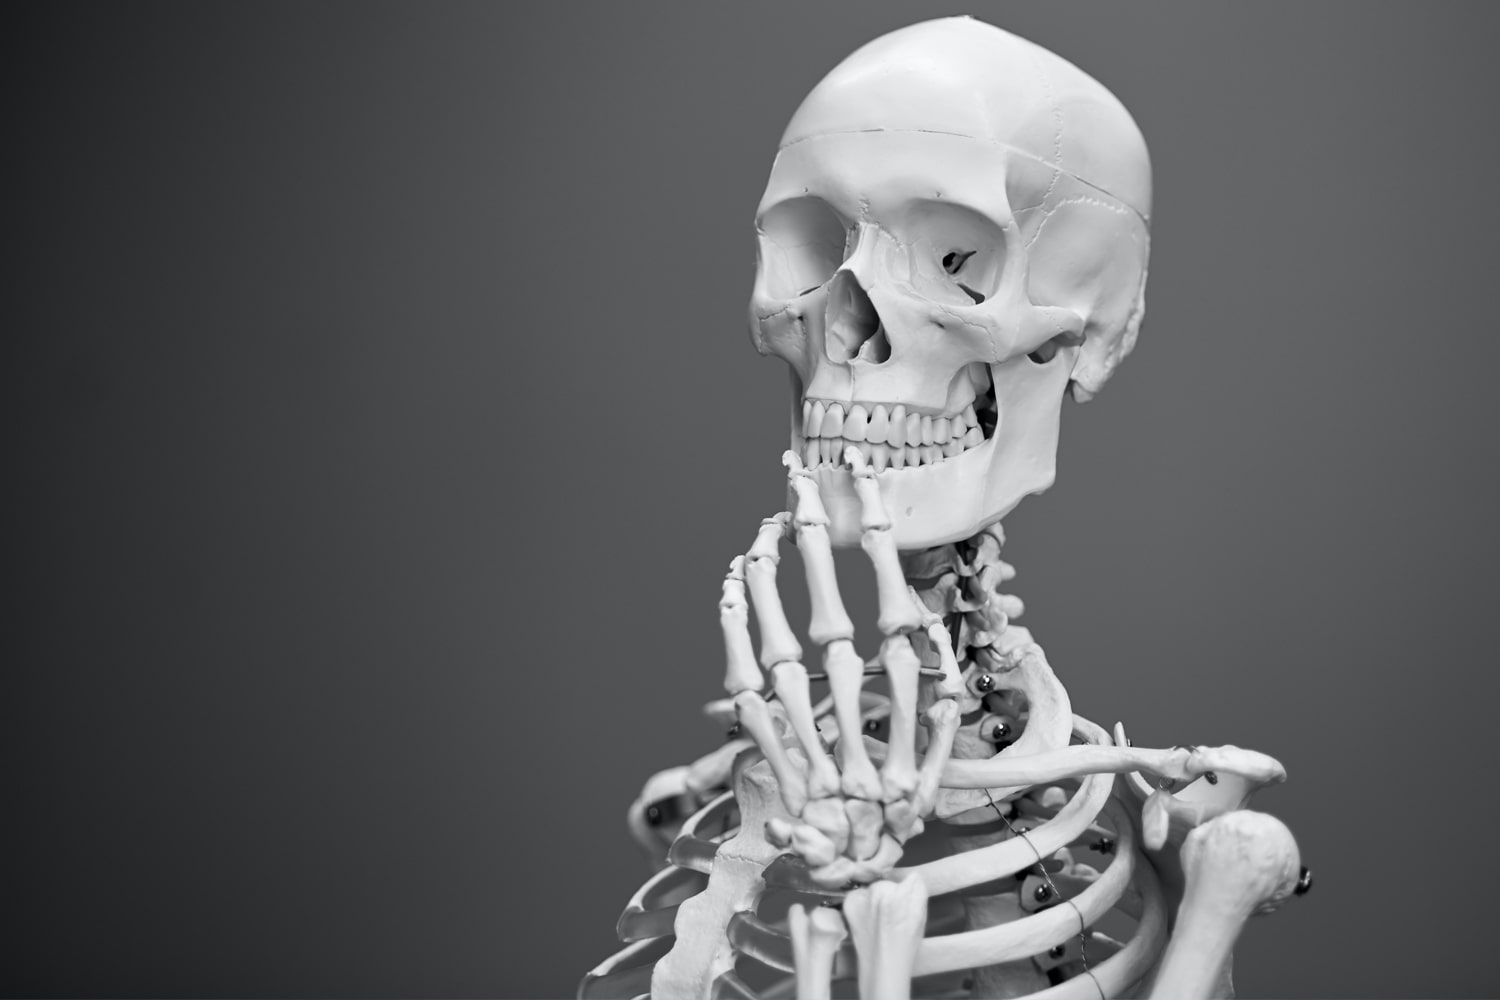 skeleton in a thinking position with black background